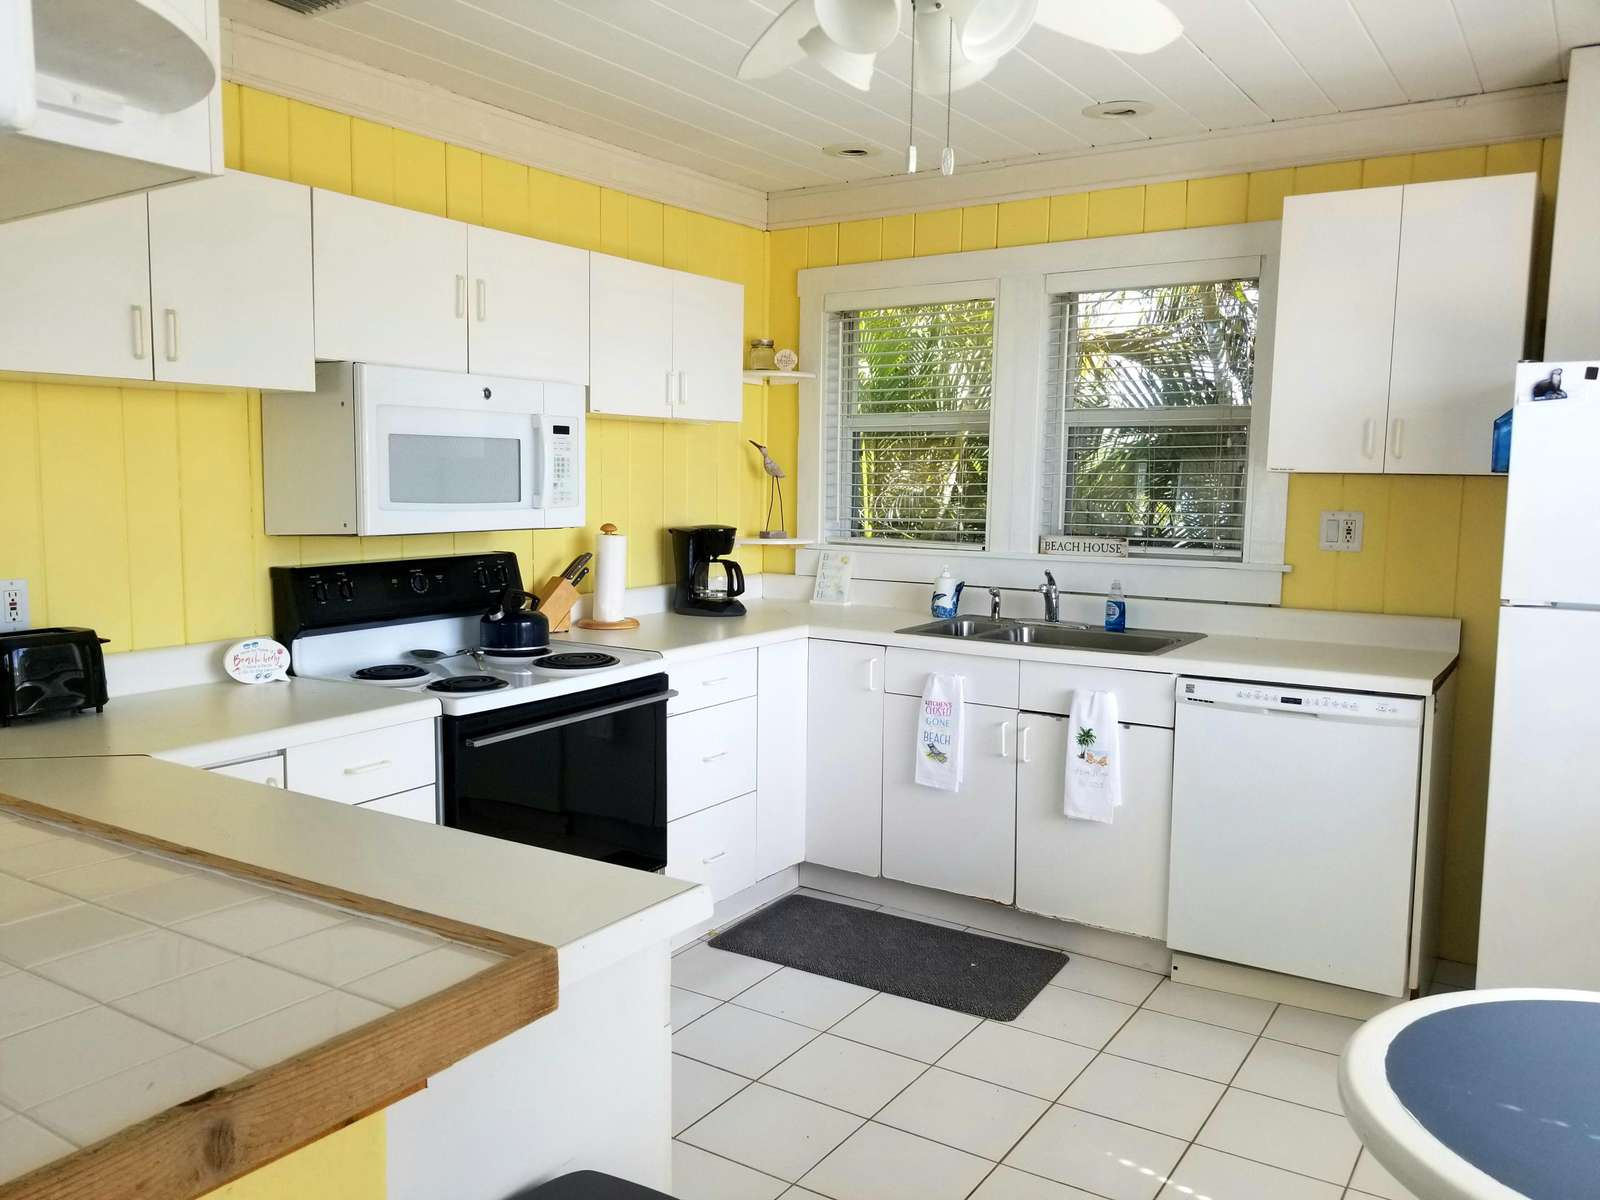 Kitchen is equipped with fridge, microwave, stove, oven and coffee maker